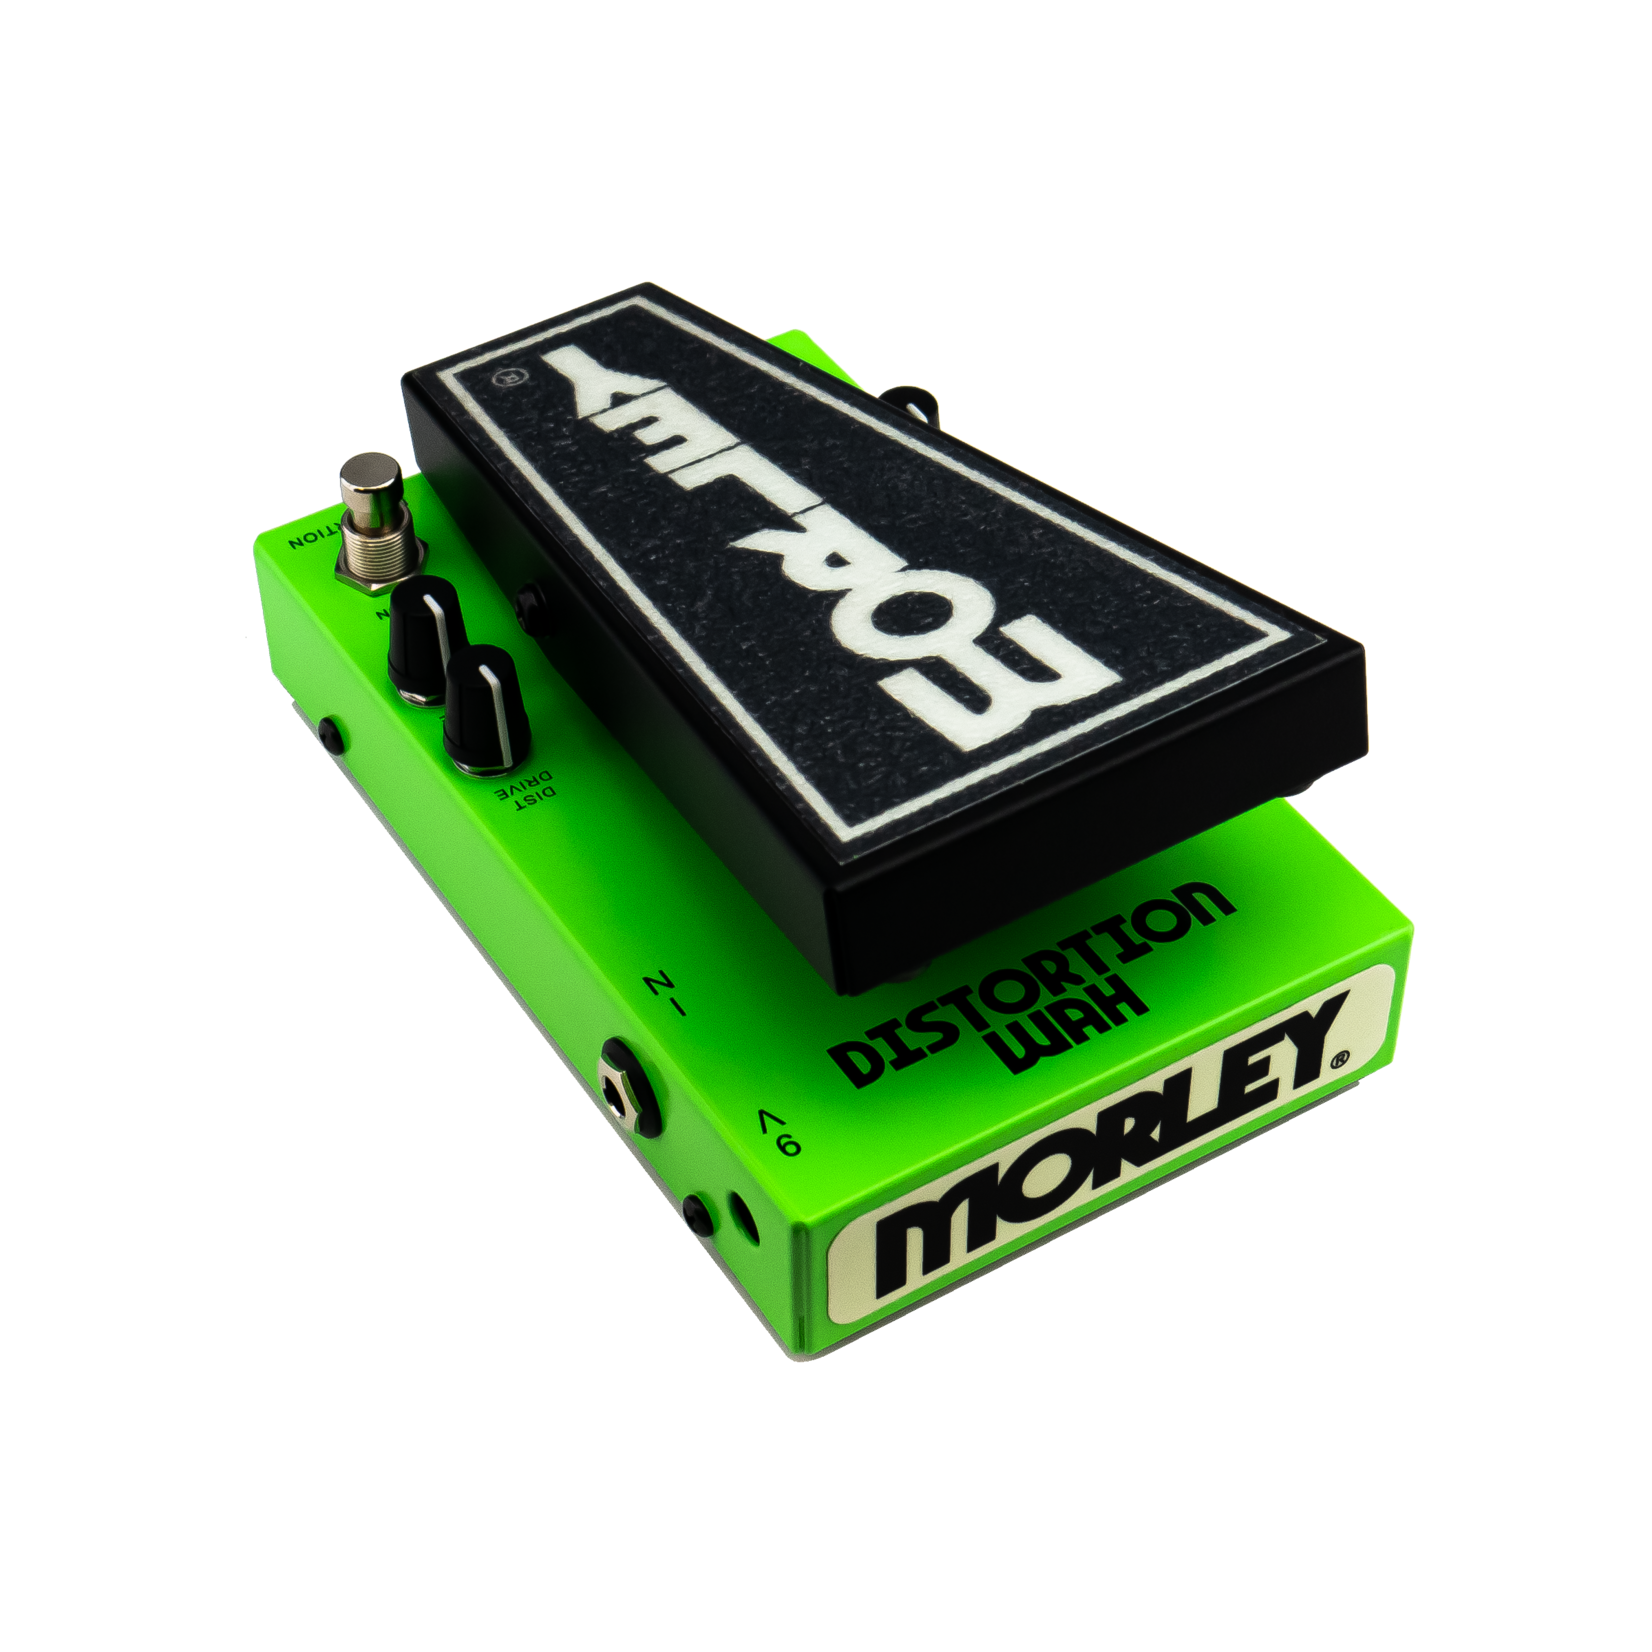 Morley Morley 20/20 Distortion Wah - classic tone combo with switchless activation, optical circuit, buffer